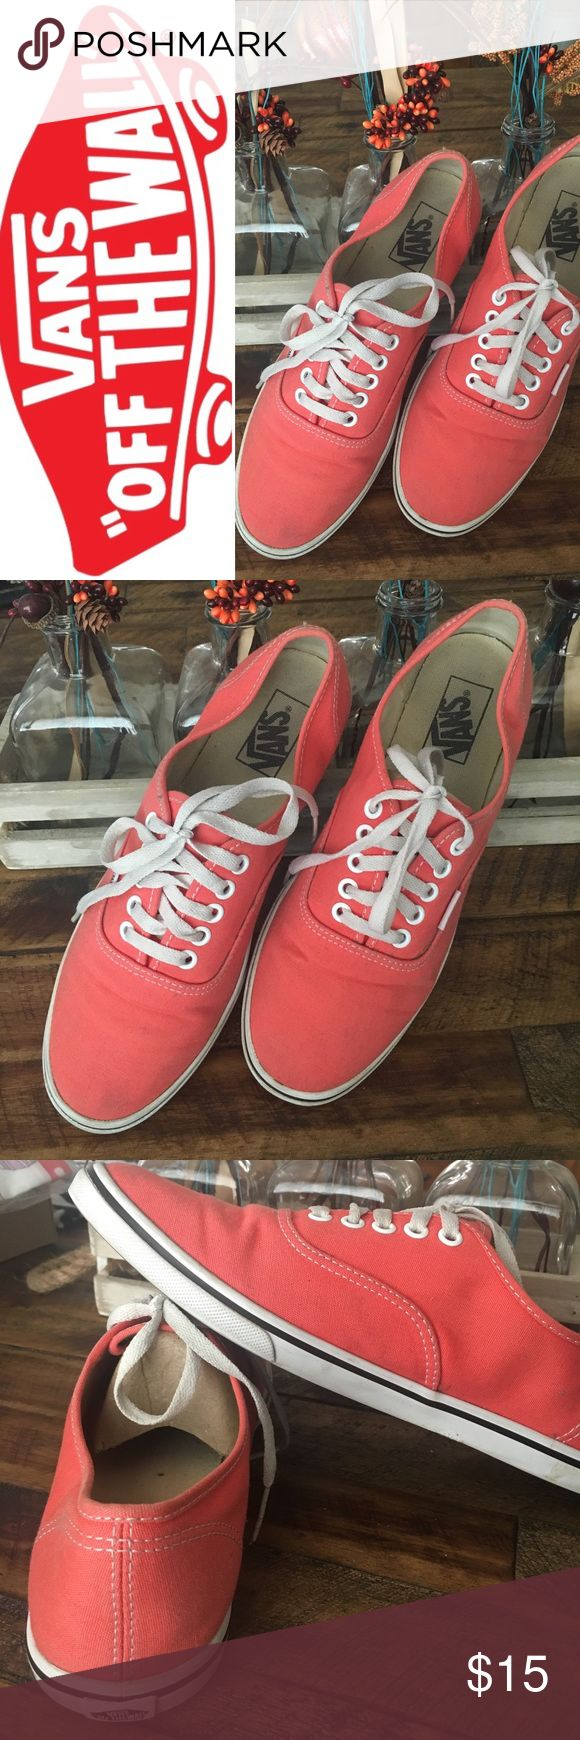 🔆Vans Vans-Soft Peach or Soft Orange if you prefer! In good shape & clean jus couple slight scuffs on the soles. Size 10 ladies or 8.5 men's Vans Shoes Sneakers